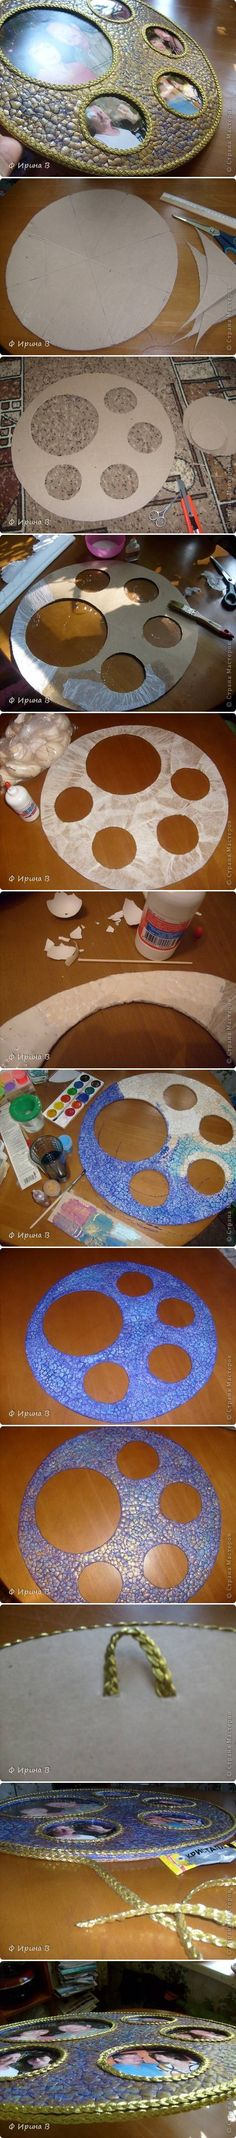 DIY Eggshell Panorama Frame...Eggshell Mosaic Craft Tutorials to Try With Your Kids Today